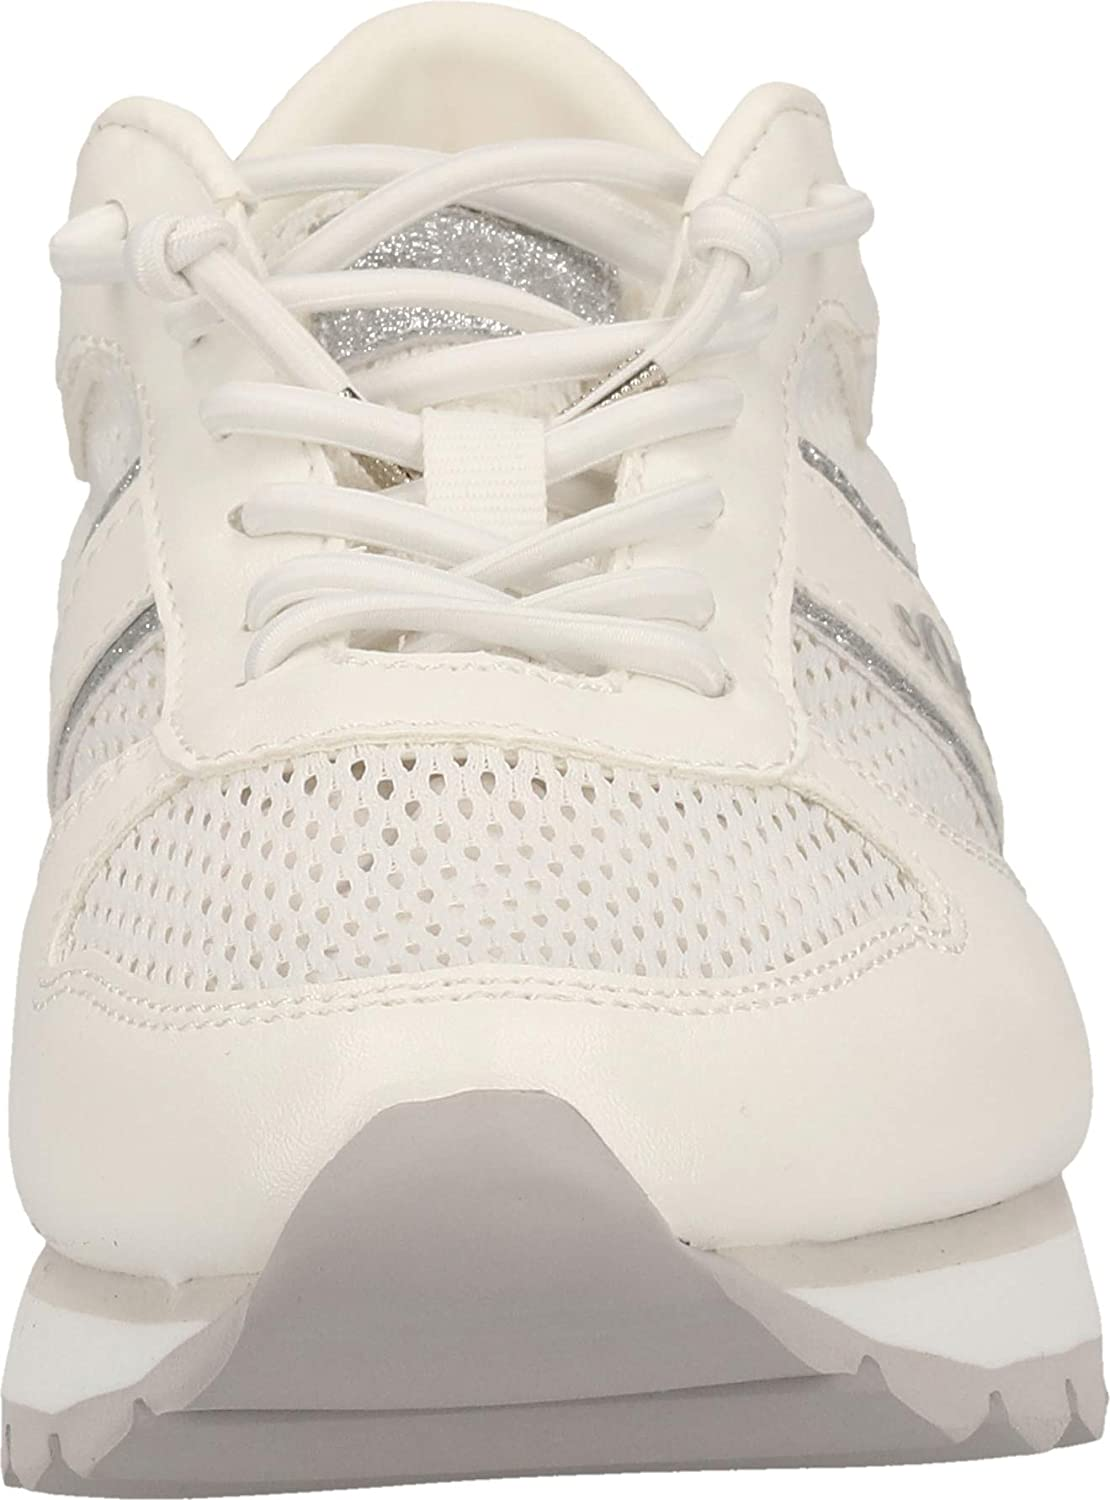 s.Oliver vrouwen 5-5-24635-24 Slip op trainers wit